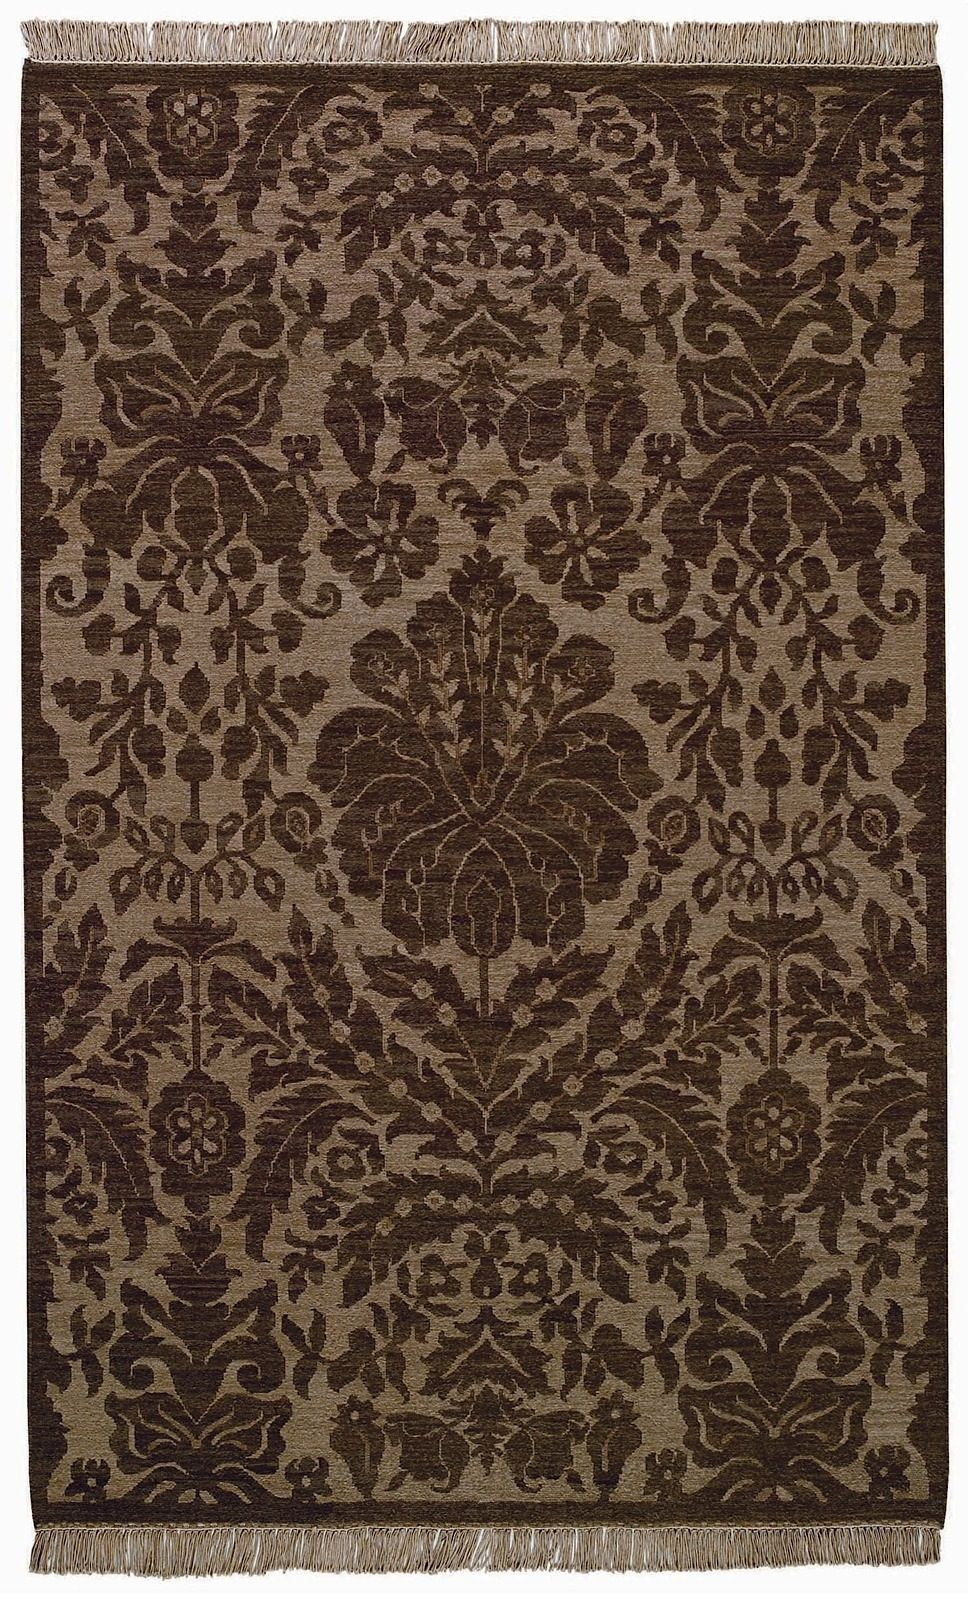 capel indienne-floral lace contemporary area rug collection